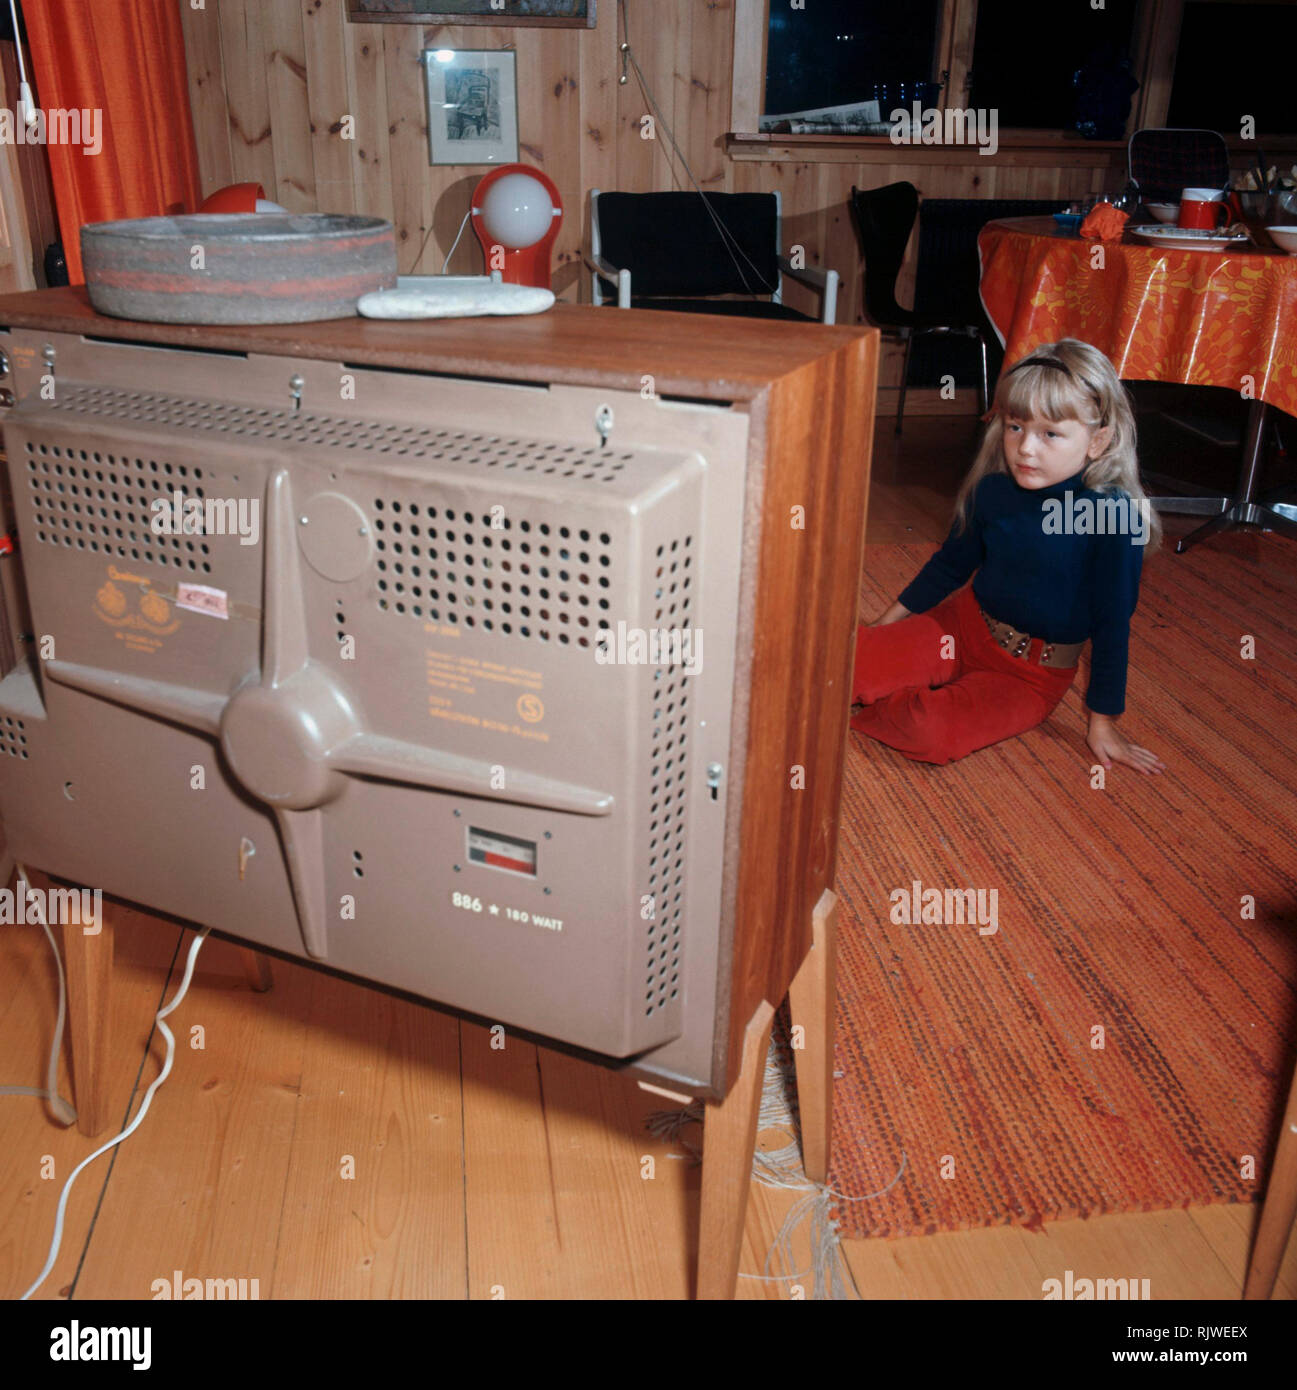 Television in the 1960s. A girl is sitting in front of a television set with her eyes on the screen and the program. Sweden 1969 - Stock Image